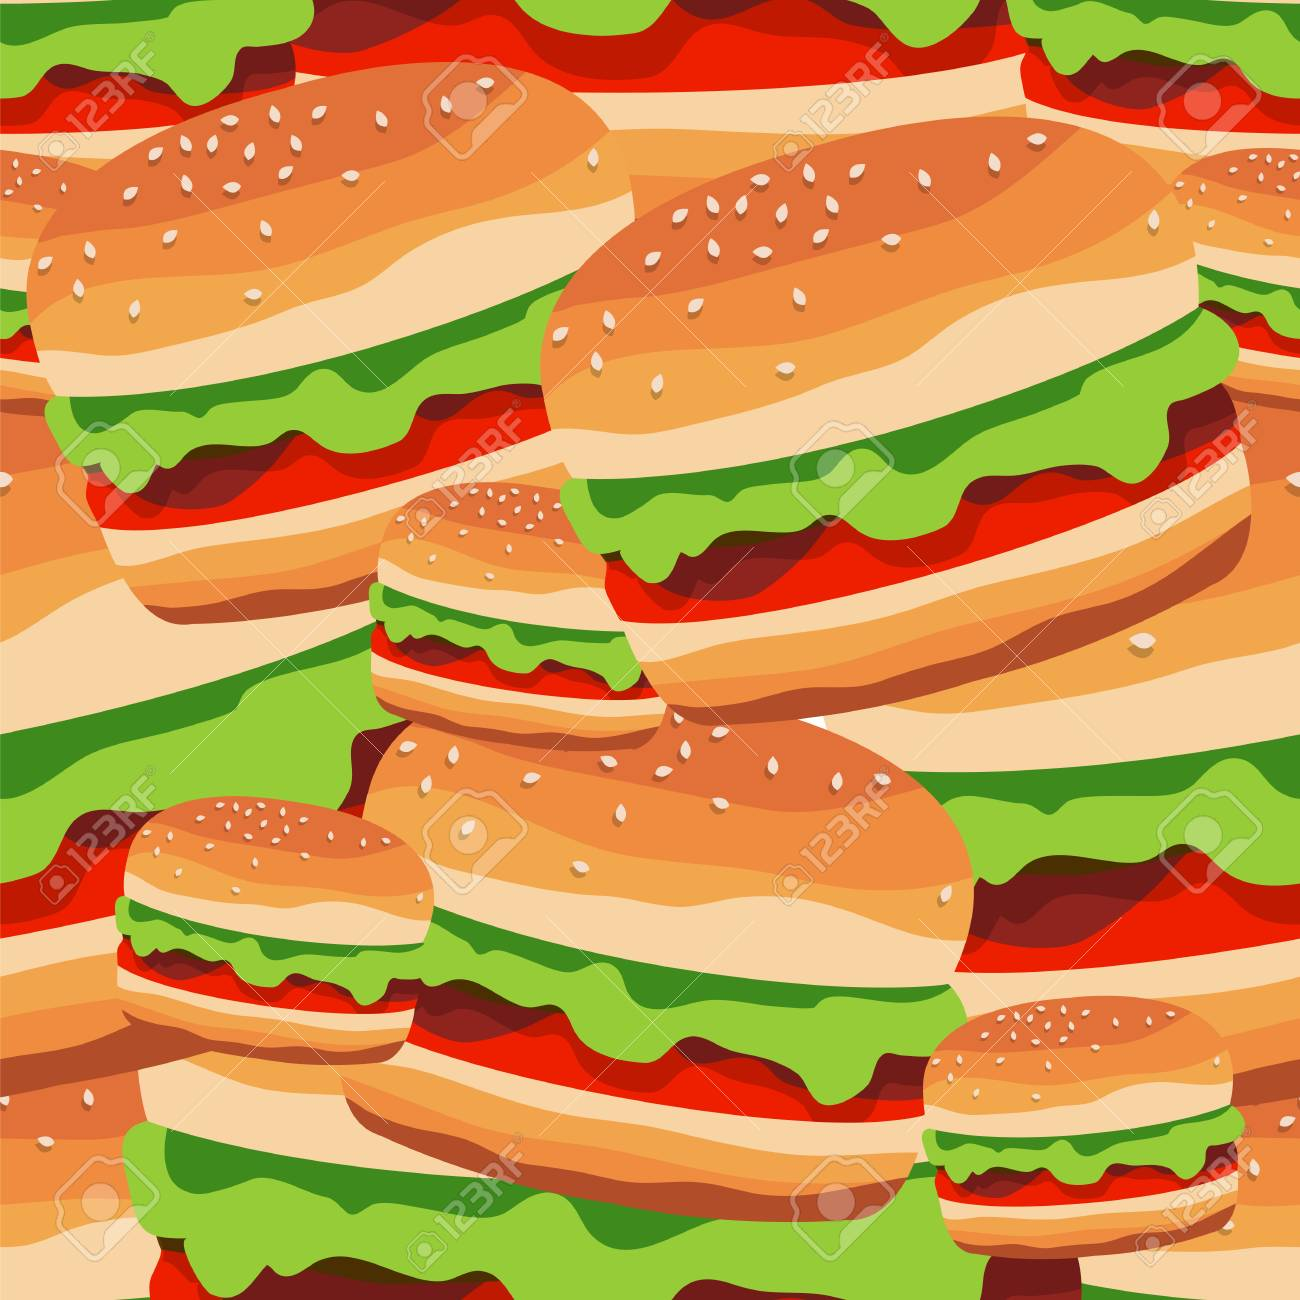 Seamless Pattern Of The Burgers Vector Illustration Fast Food For A Wallpaper Design Or